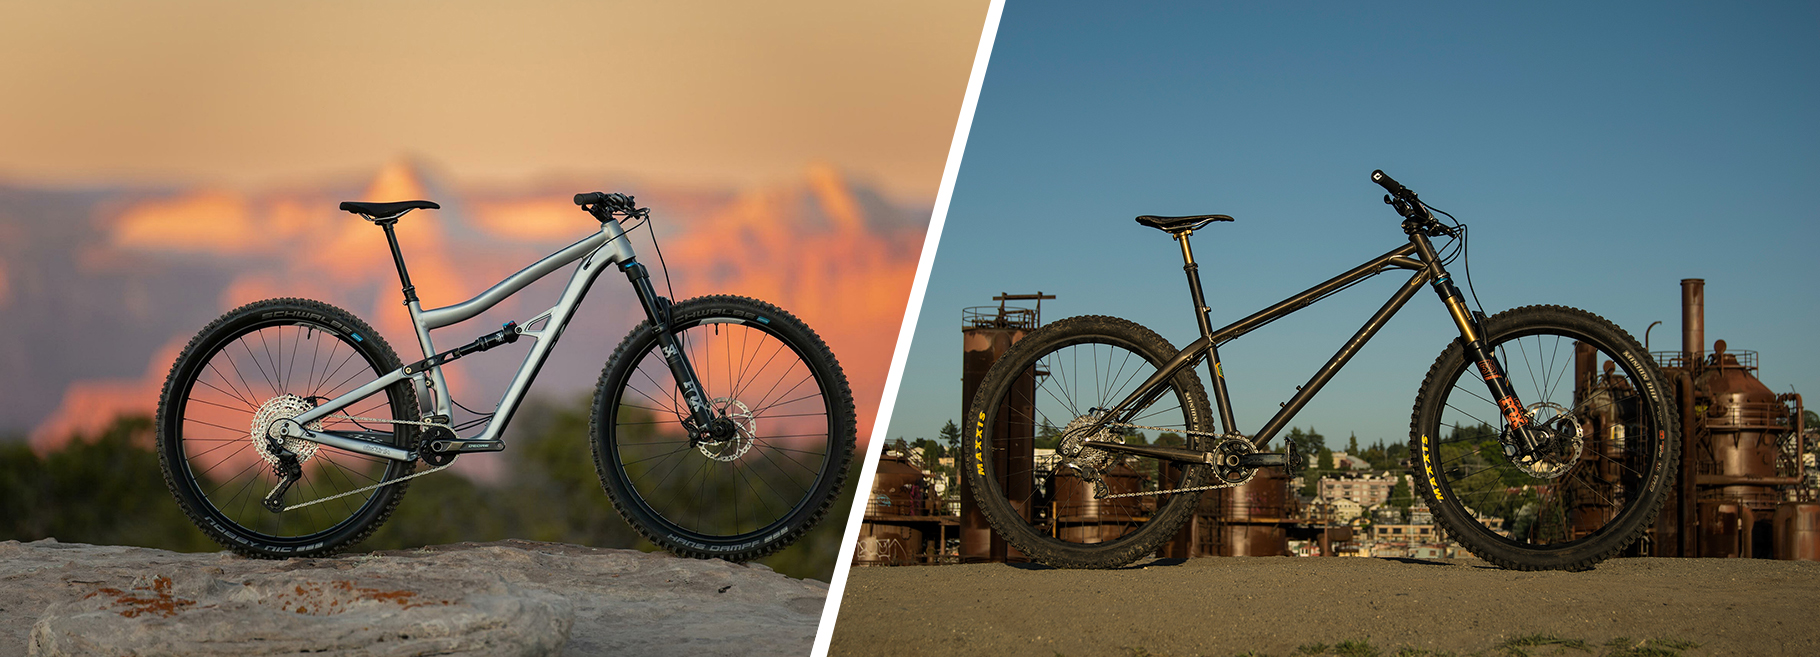 Blister Would You Rather: Hardtail vs. Full Suspension